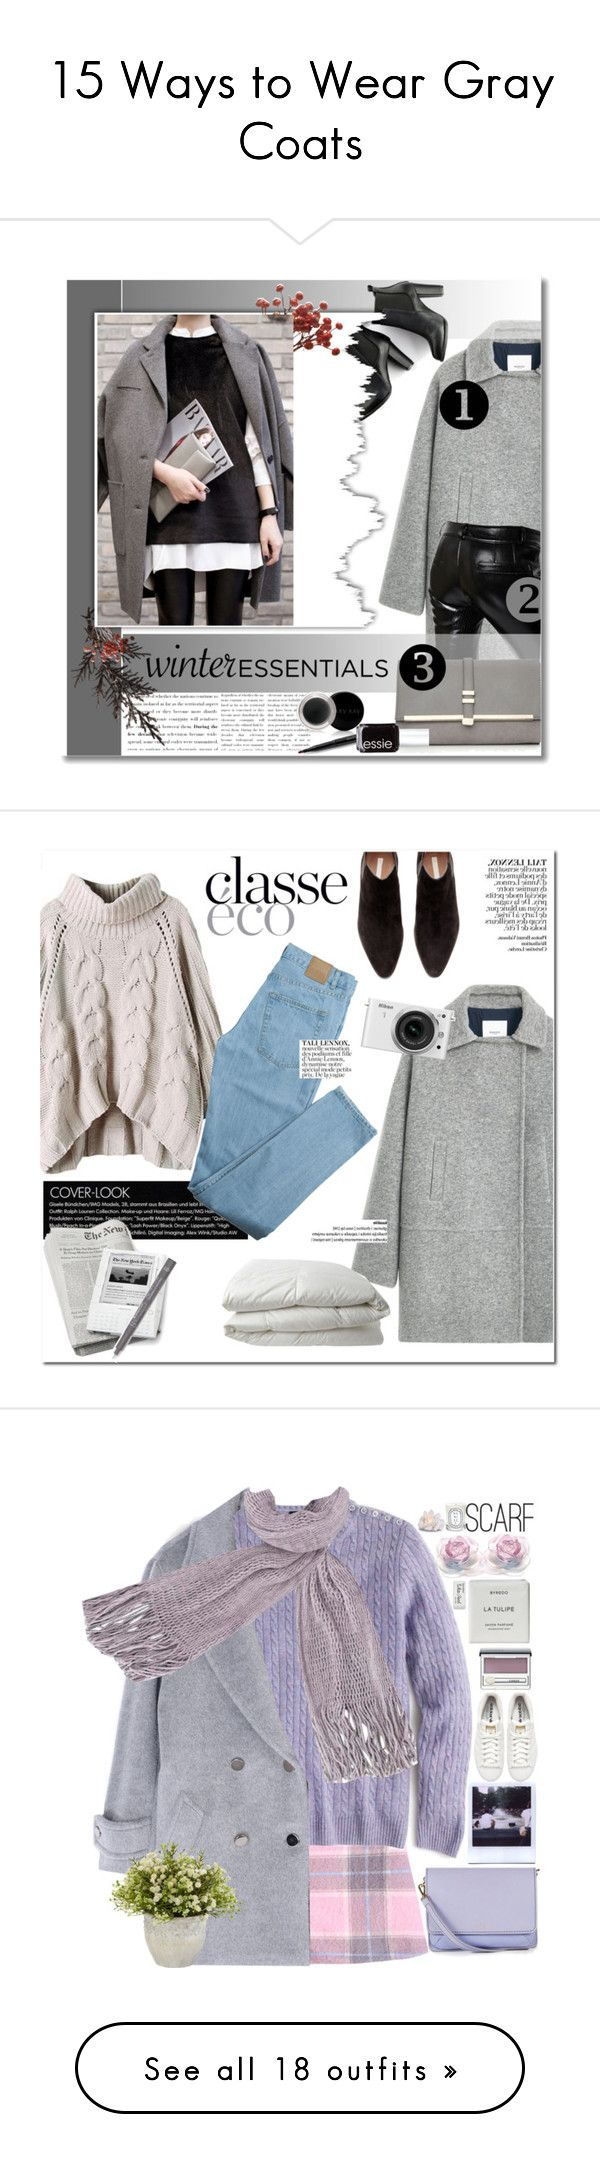 """""""15 Ways to Wear Gray Coats"""" by polyvore-editorial ❤ liked on Polyvore featuring waystowear, graycoat, MANGO, Each X Other, SWEET MANGO, Wallis, Mary Kay, Essie, winteressentials and H&M"""